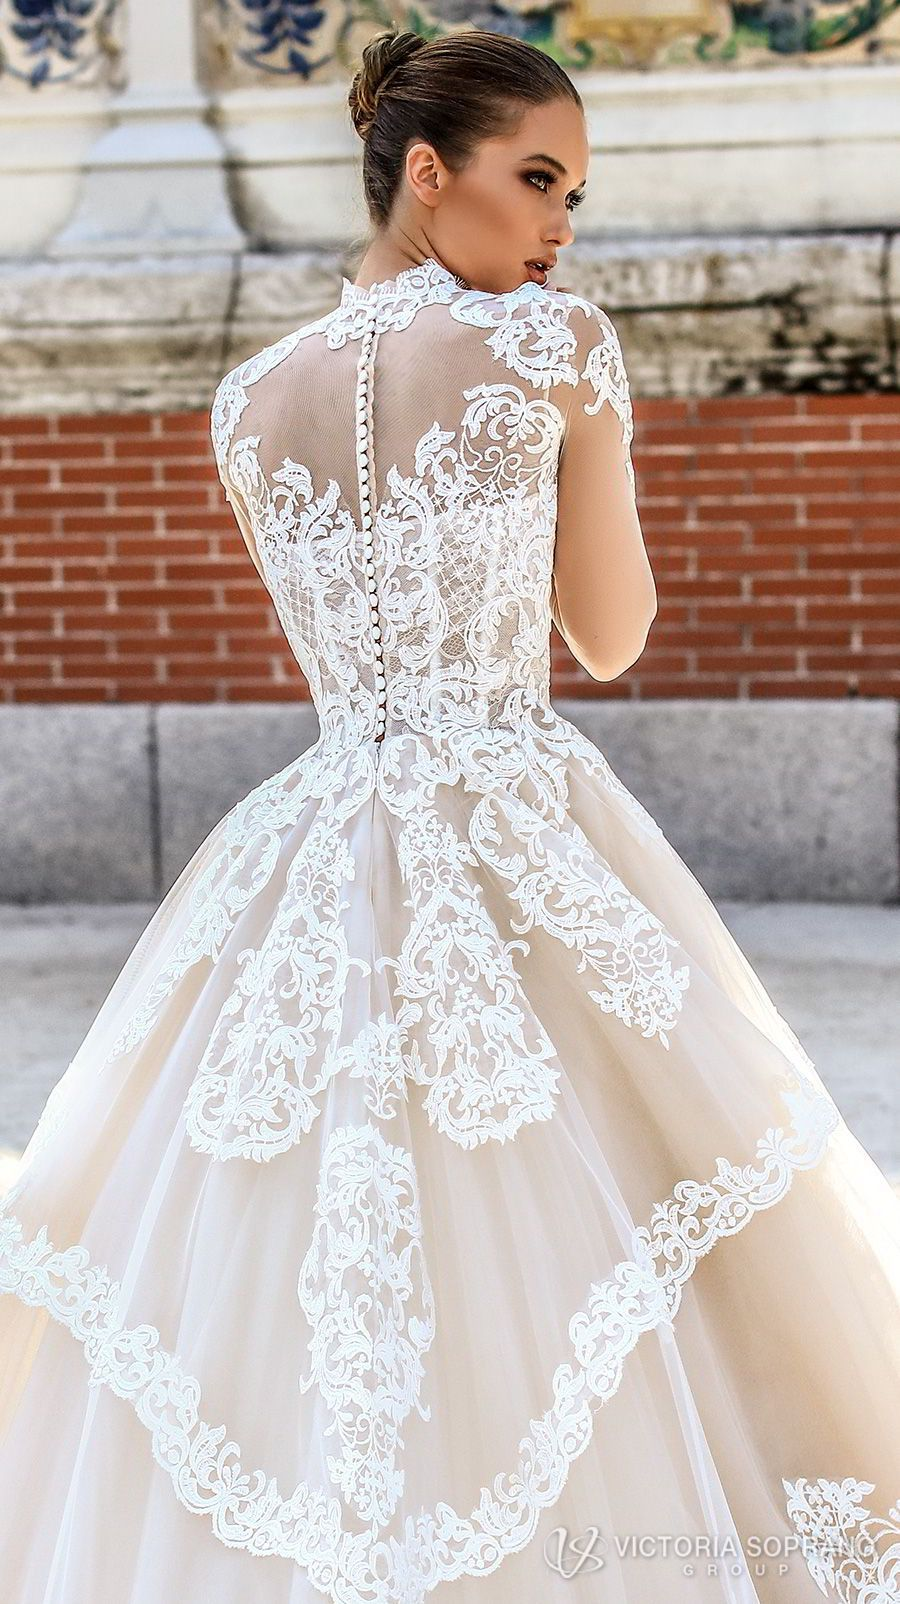 Matrimonio Da Sogno · Victoria Soprano 2018 Wedding Dresses   weddingdresses   bridalgown Idee Per Matrimoni a6ffcedfe0d